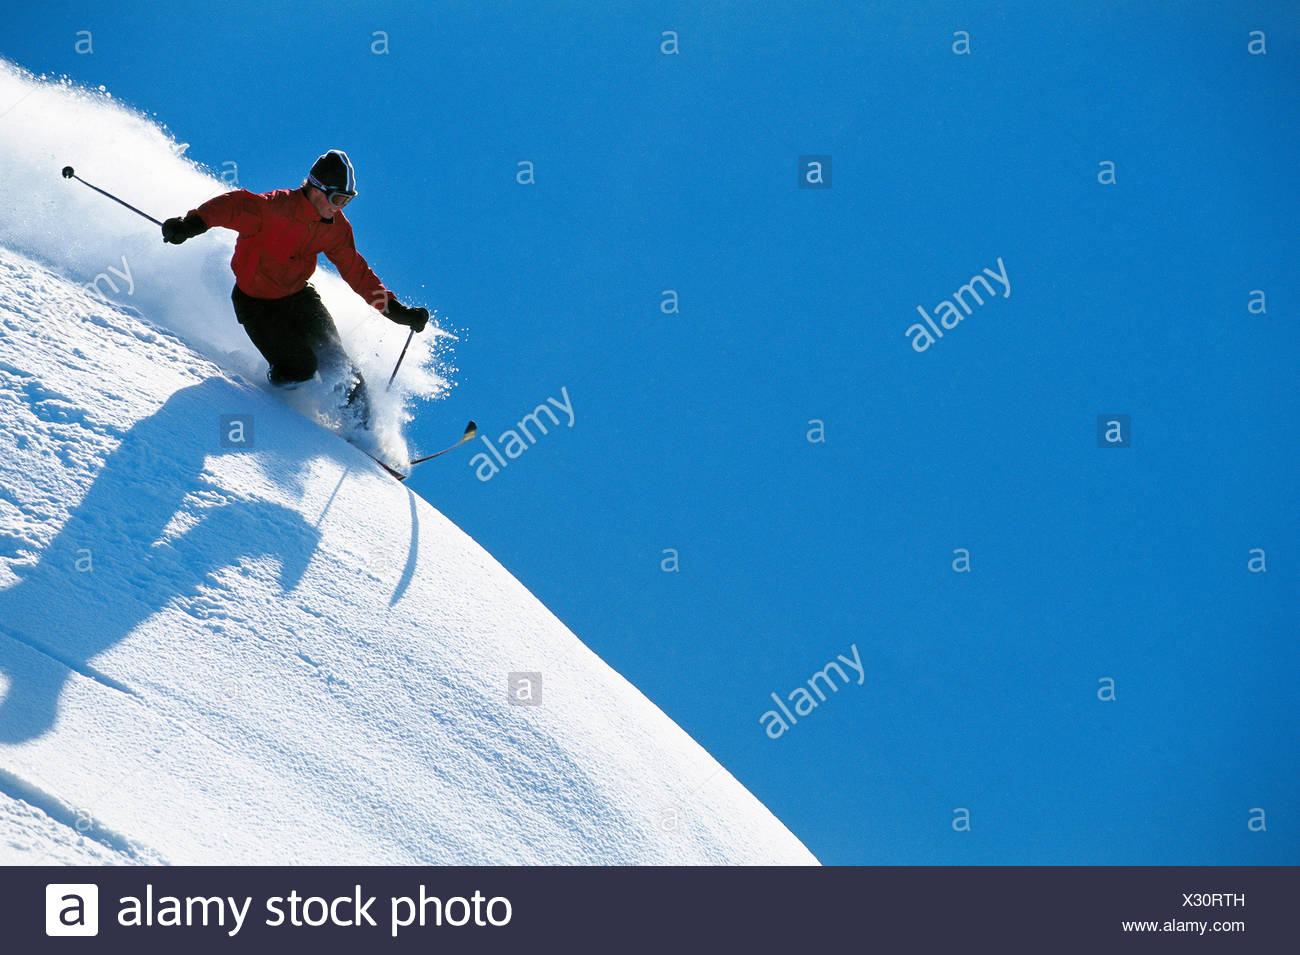 30-34 years activity adults only adventure blue clear sky color image courage downhill skiing horizontal leisure lifestyle - Stock Image